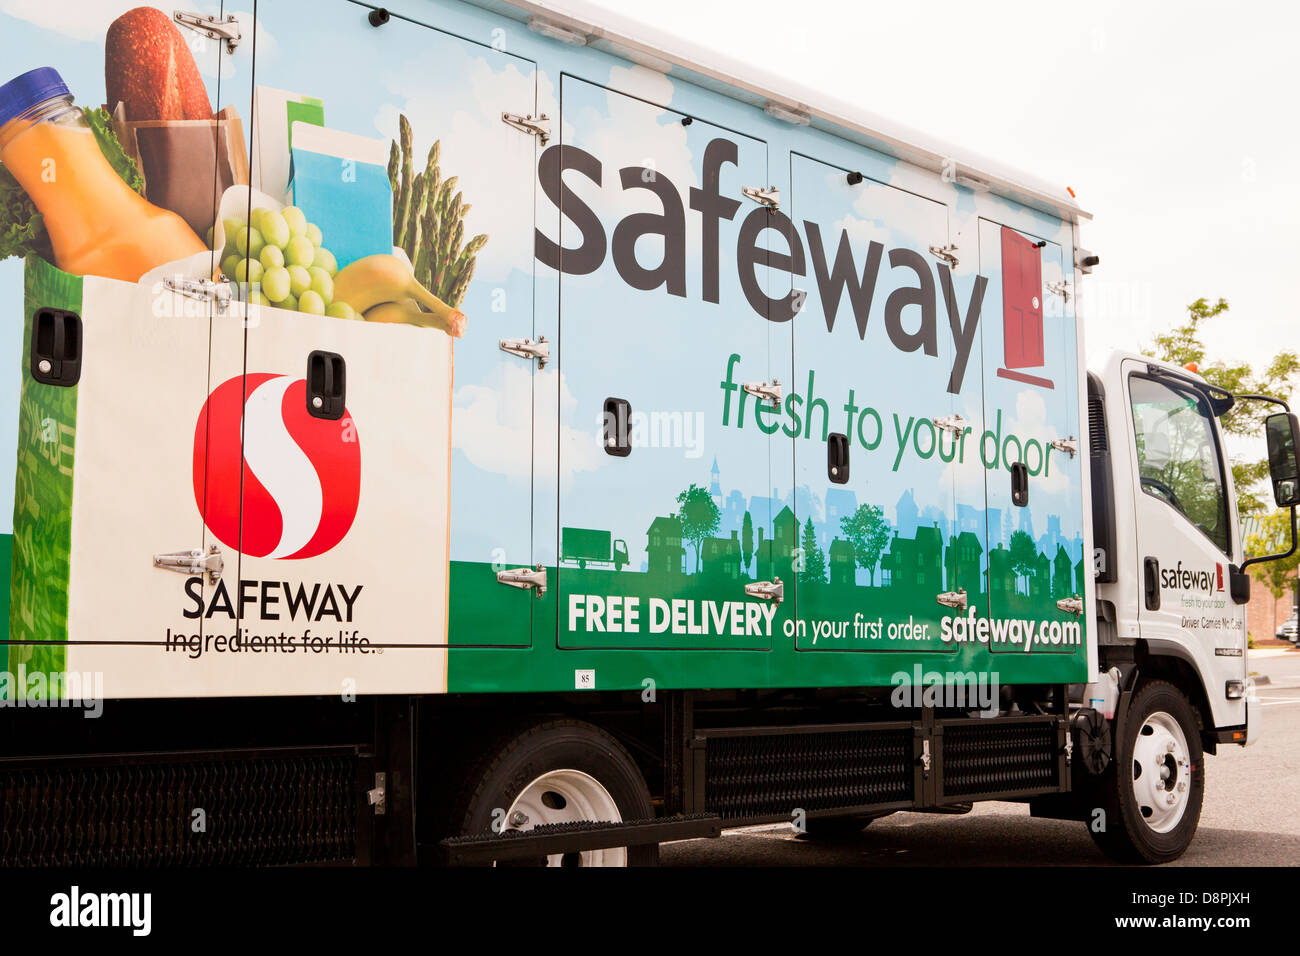 Safeway Home Delivery Trucks Stock Photo Royalty Free Image 57046153 Alamy